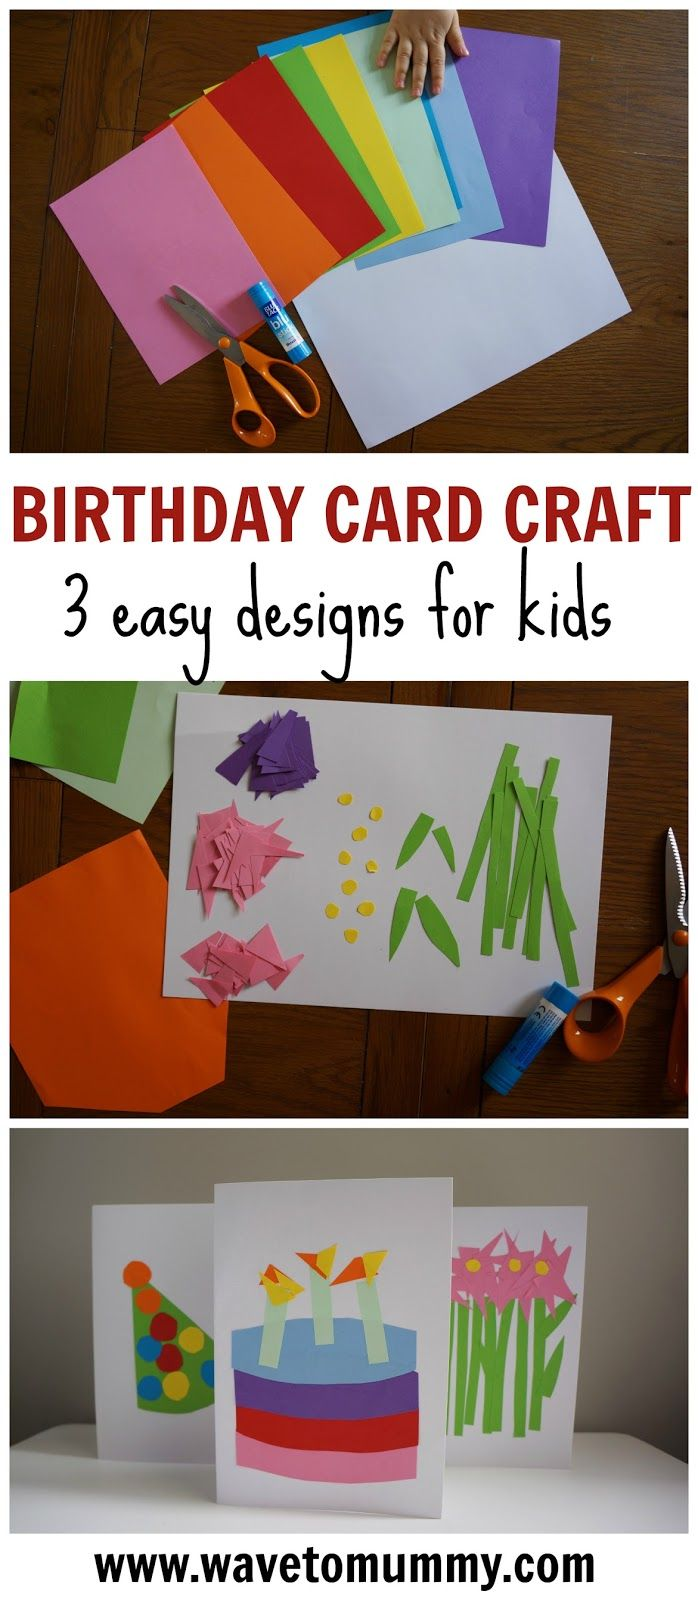 How to easy birthday card crafts to do with toddlers paper glue